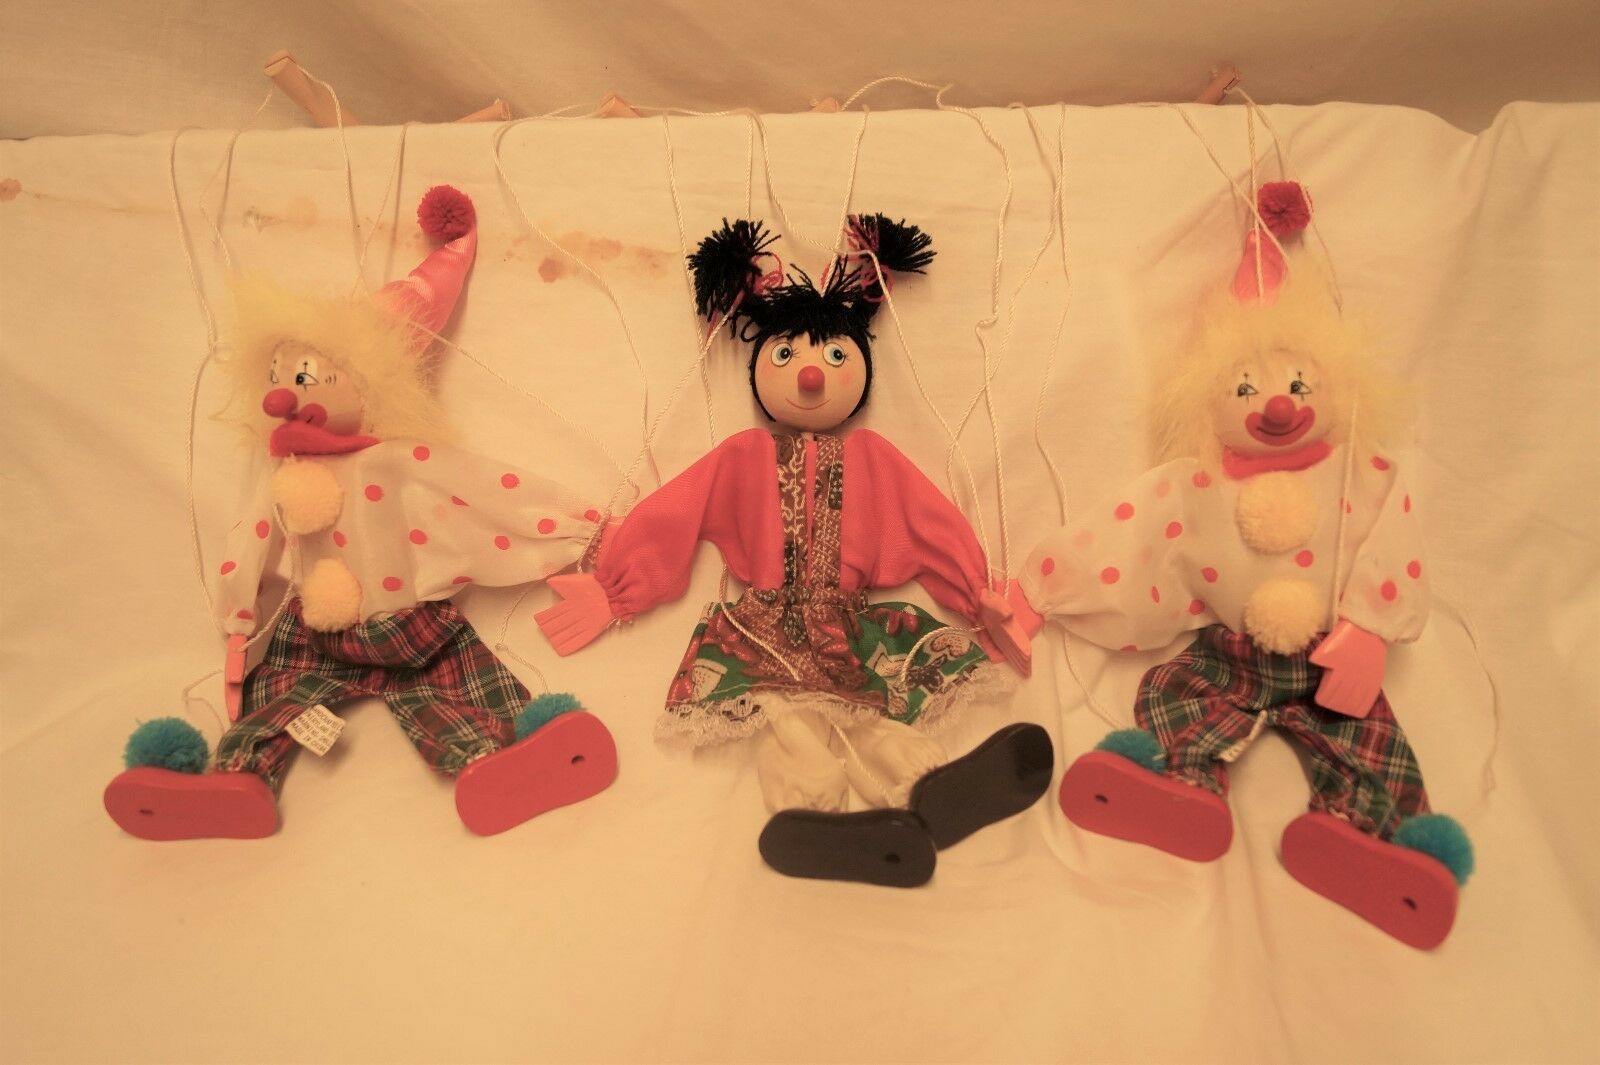 Marionettes, Wood - $30.00